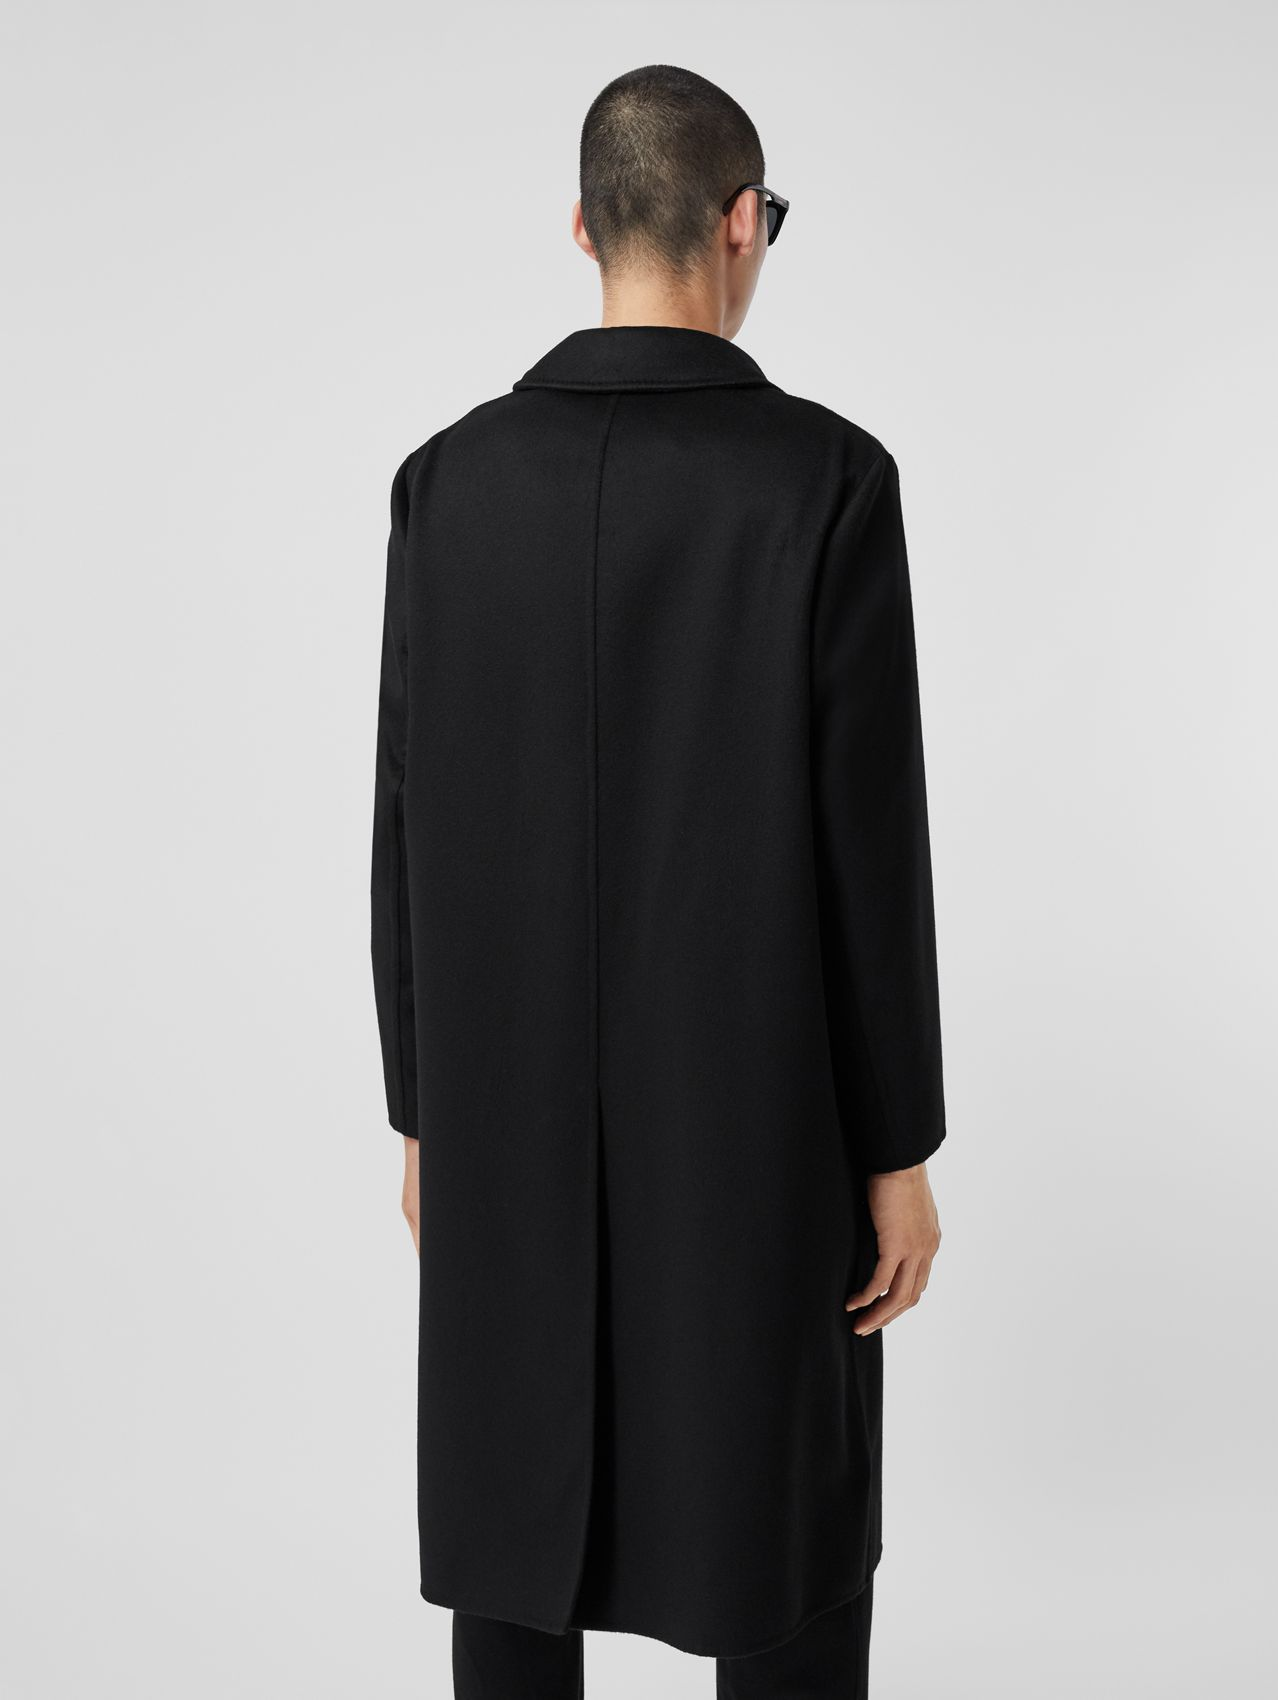 Monogram Detail Regenerated Cashmere Car Coat in Black